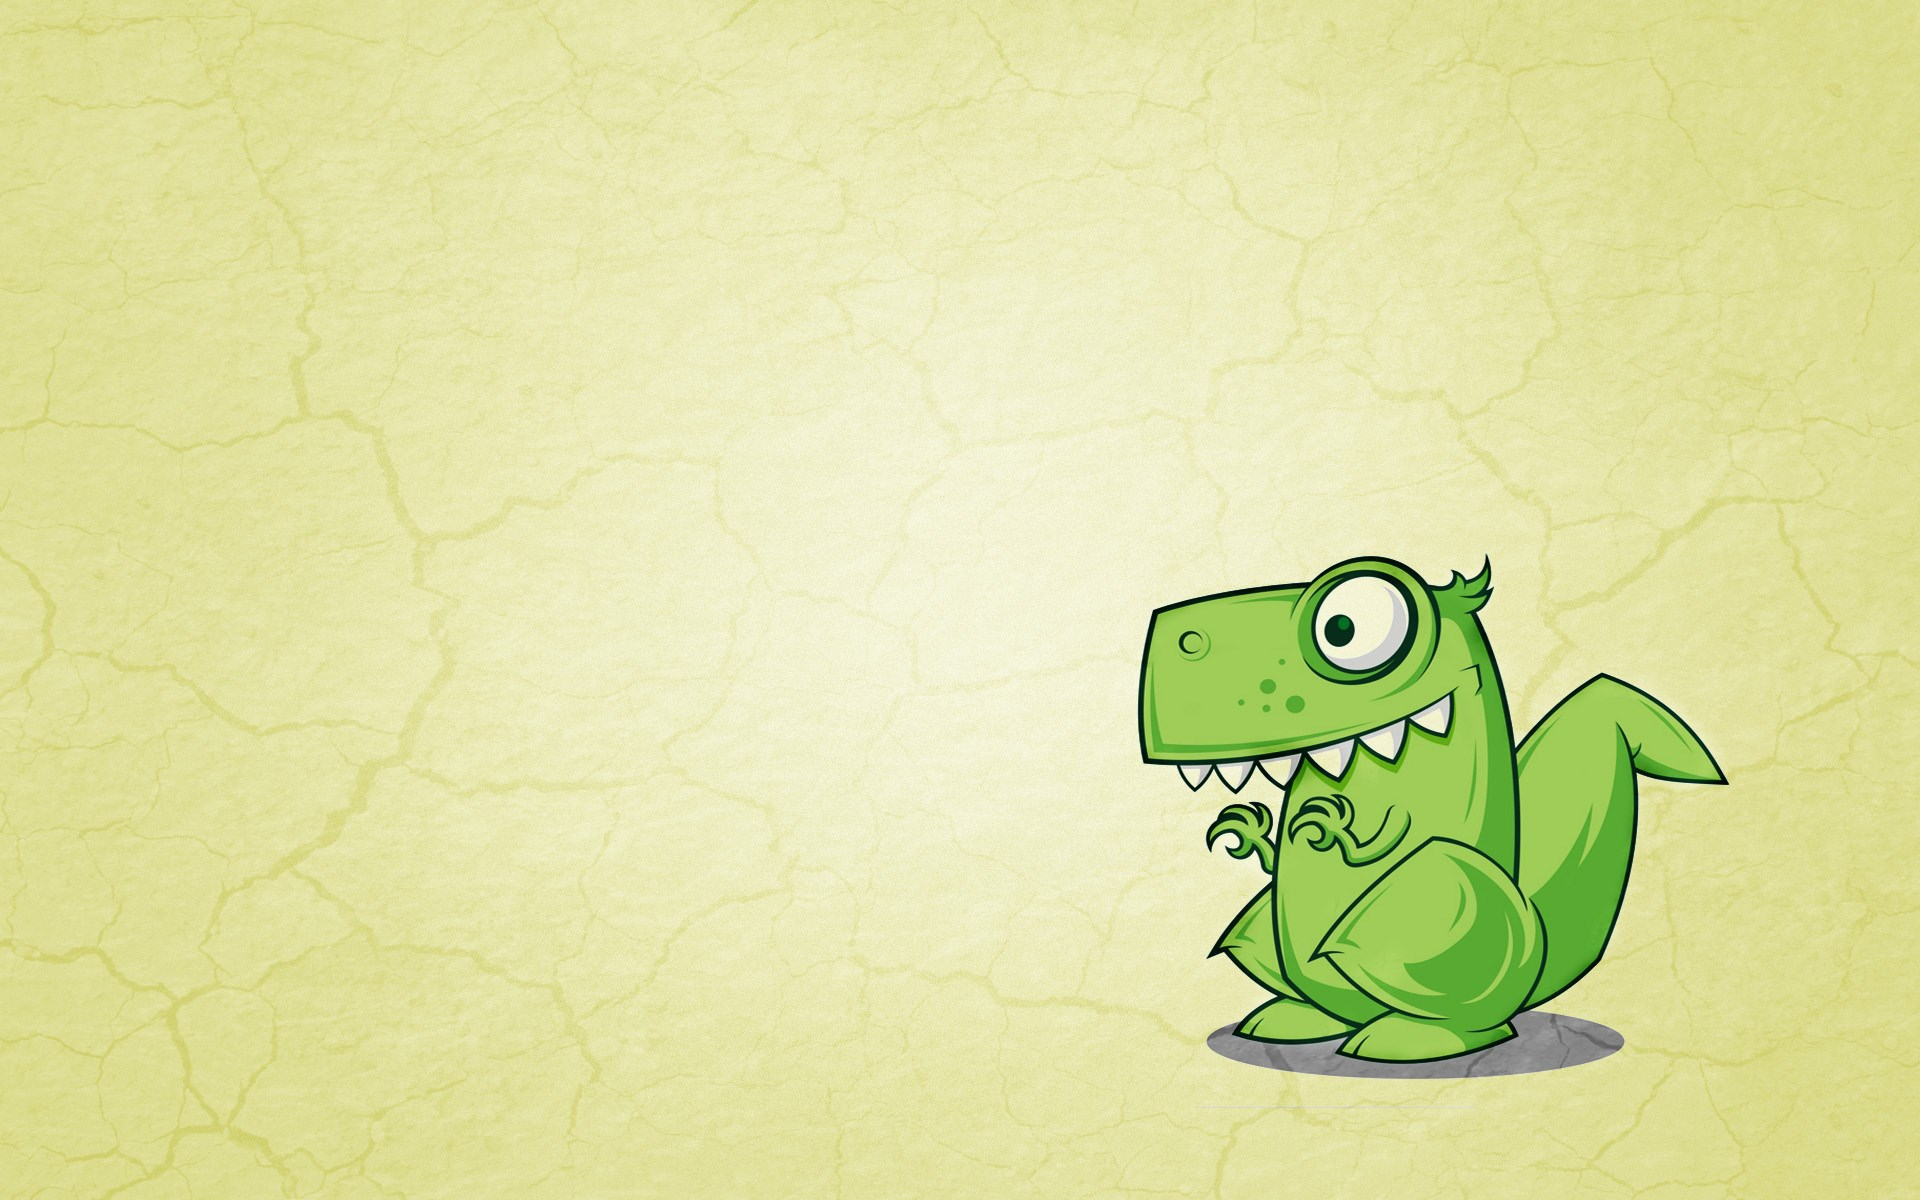 Dinosaur Green Cartoon Art